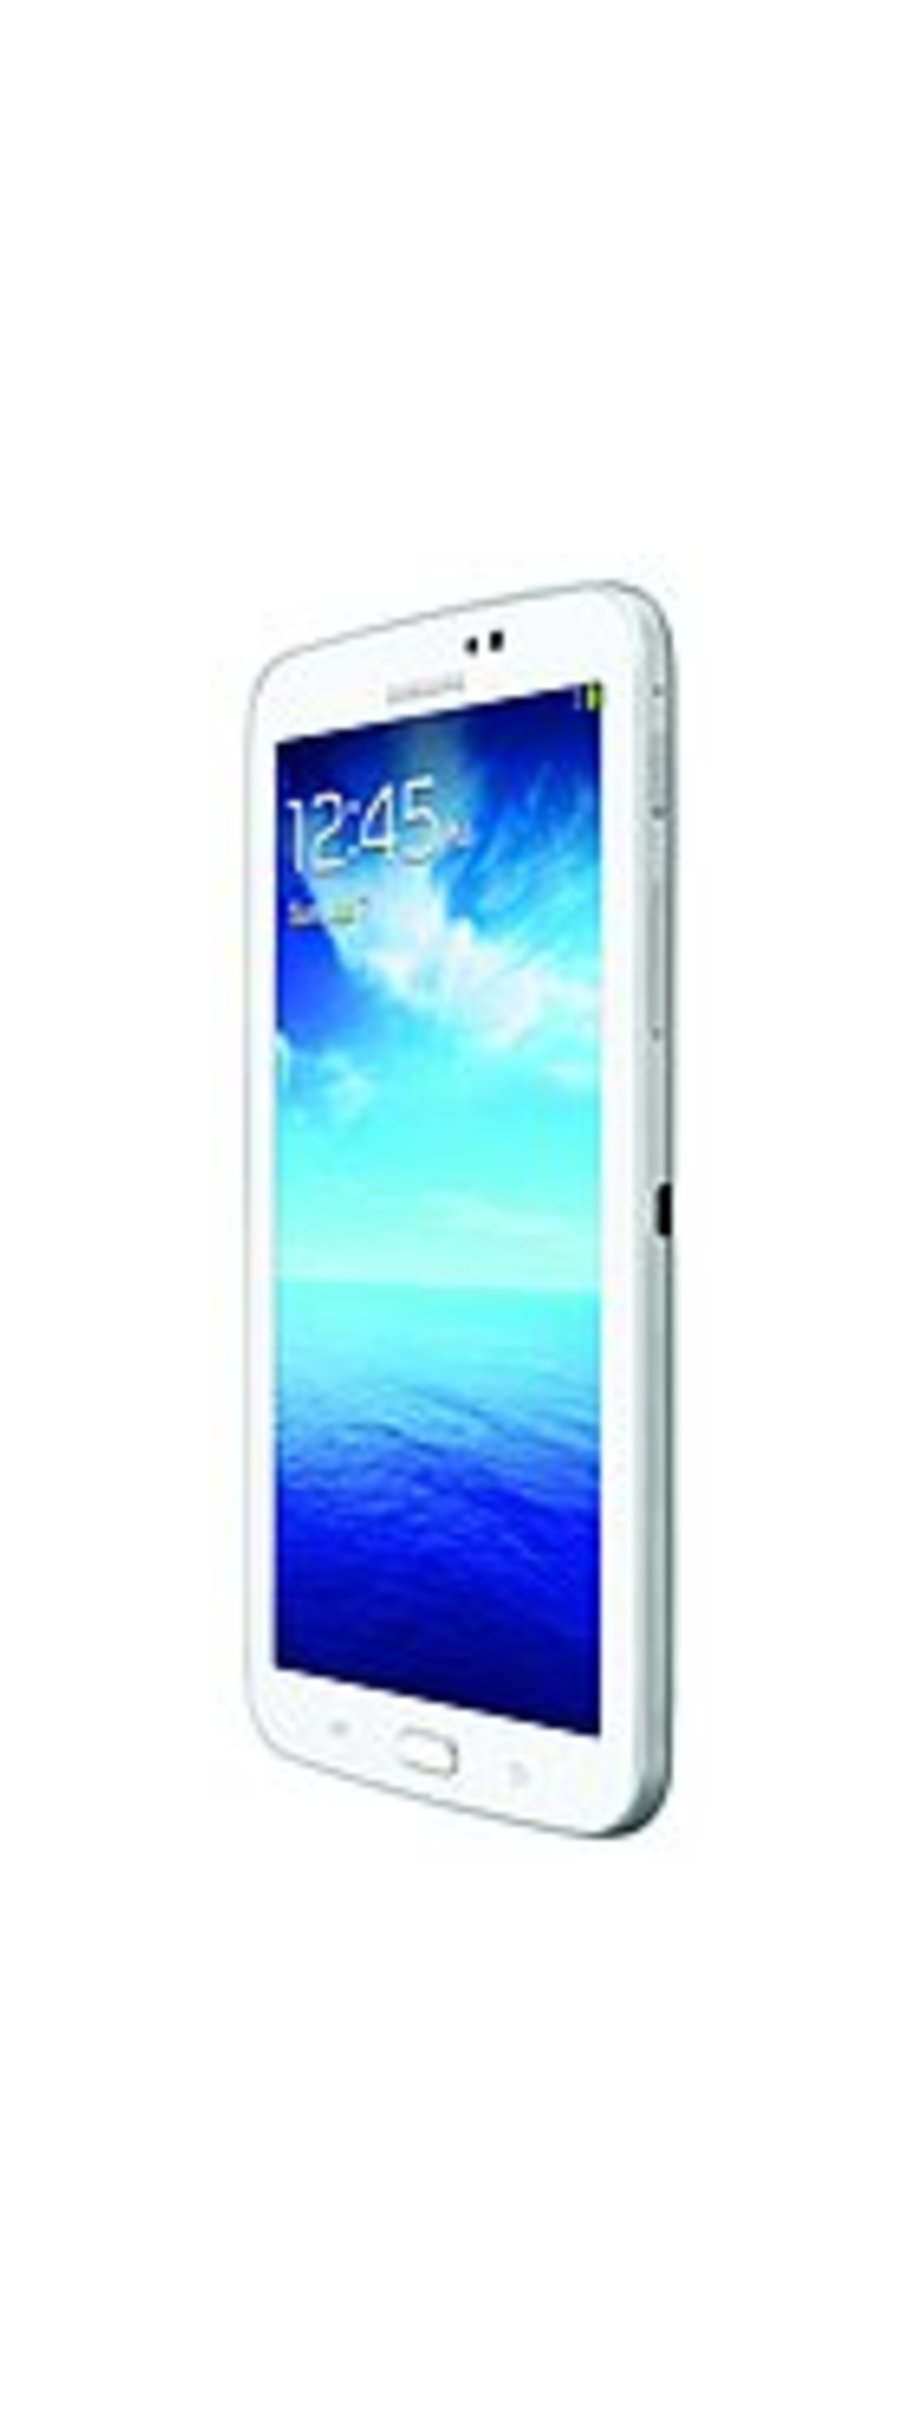 Samsung Galaxy SM-T210RZWYXAR Wi-Fi Tab 3 - Dual-Core 1.2 GHz Processor - 1 GB RAM - 8 GB Storage - 7-inch Multi-Touch Display - Android 4.1 - White